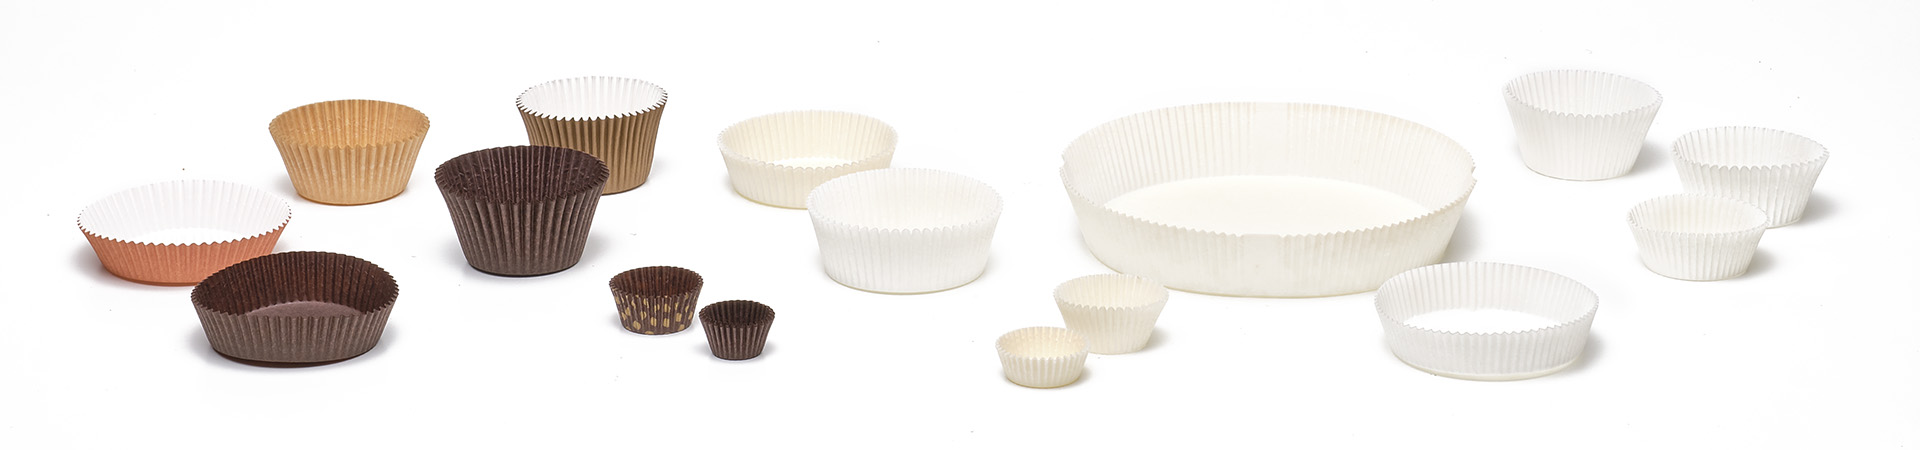 Novacart Round Cup series paper baking cups